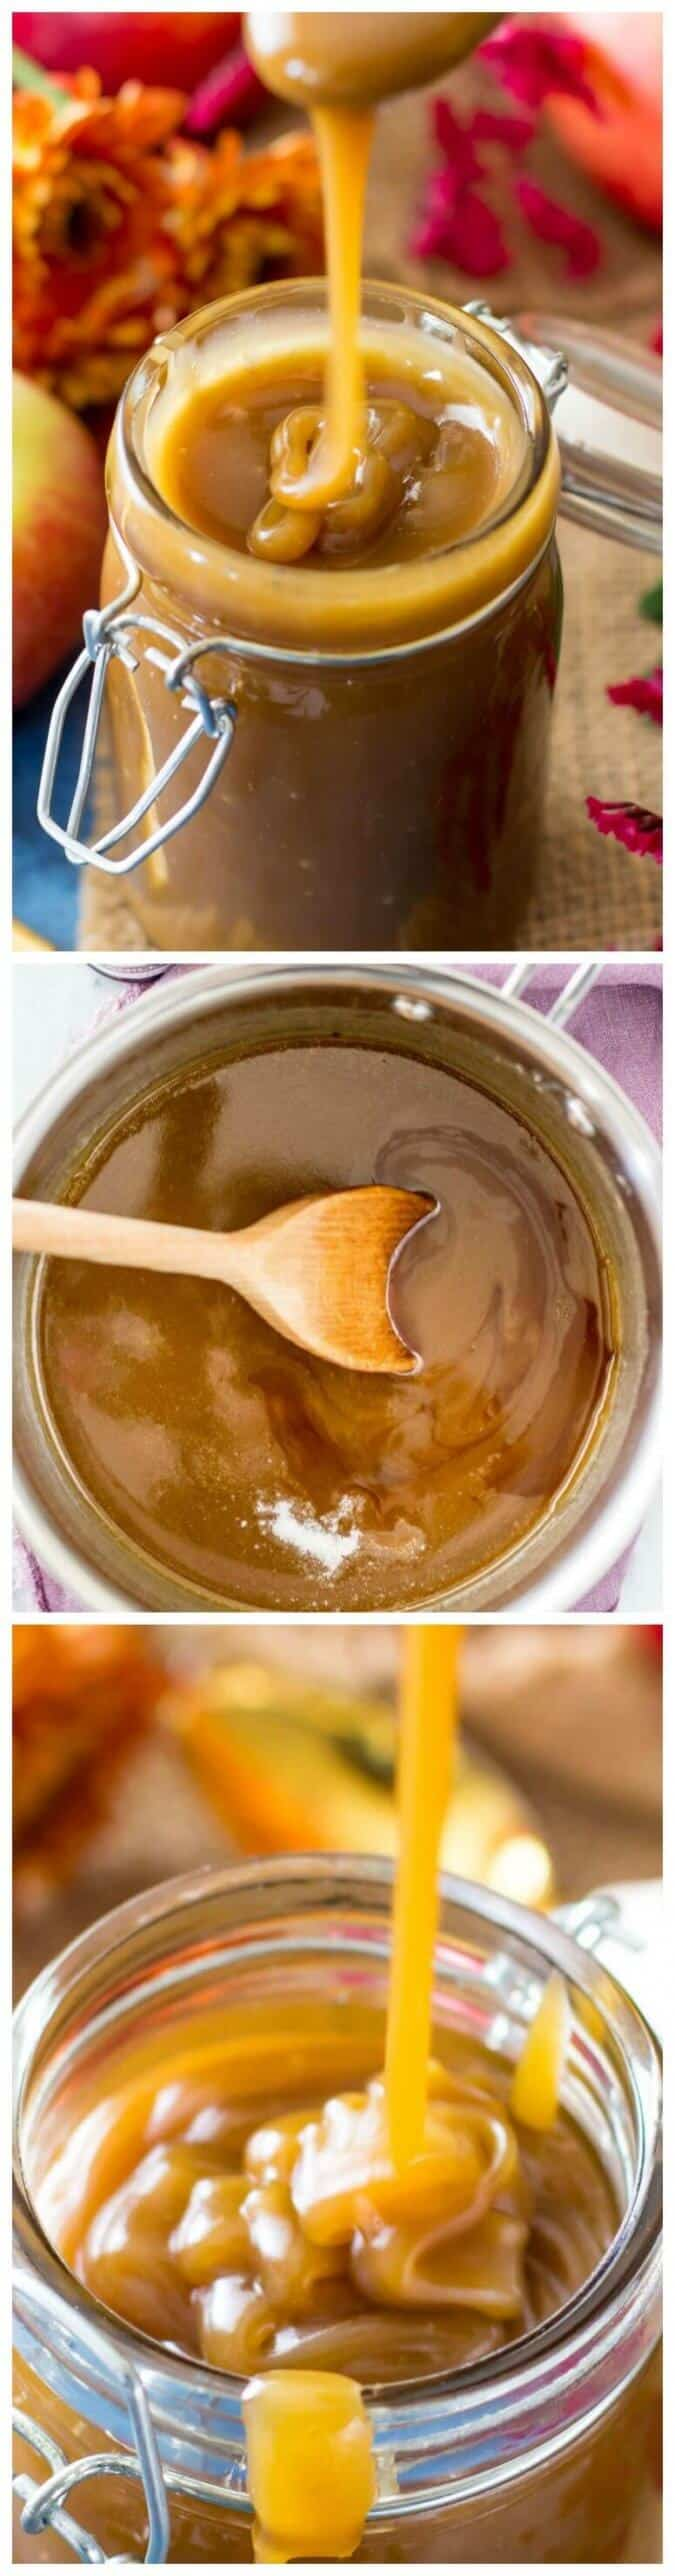 Quick & Easy Salted Caramel Sauce